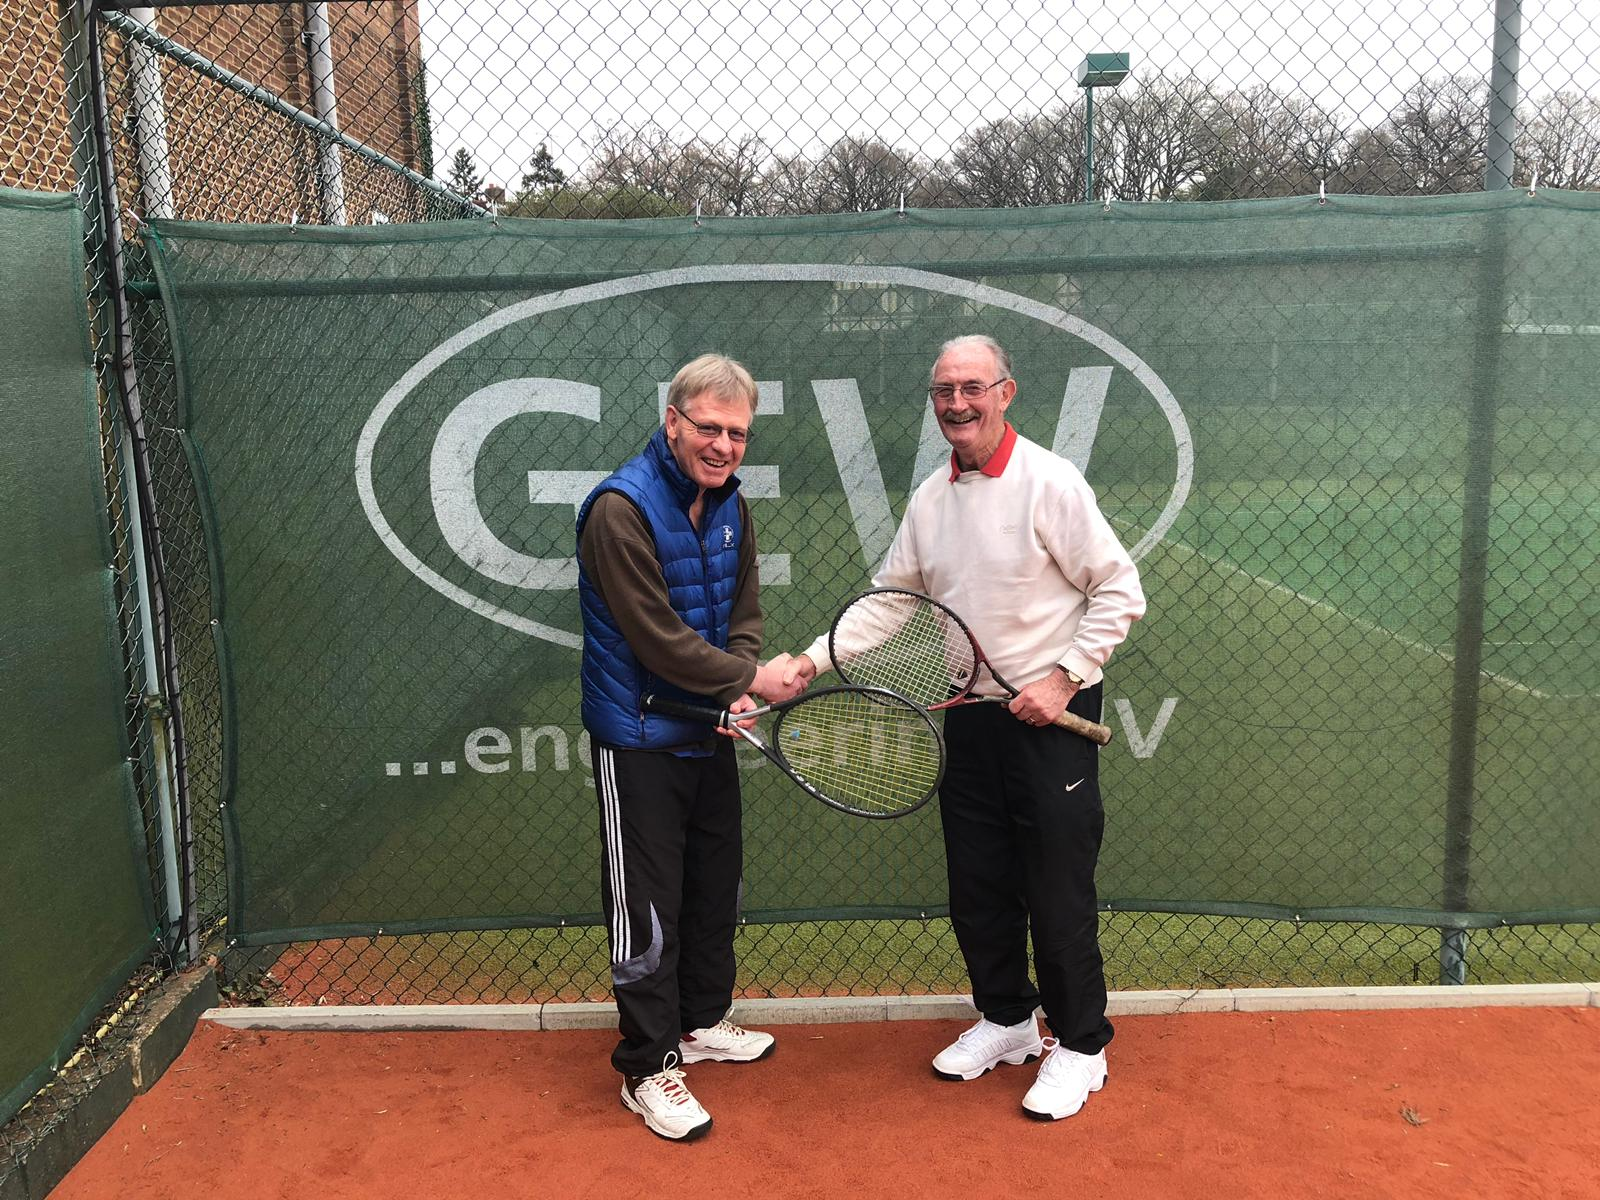 Patek Philippe MD seeks to raise £50,000 for Parkinson's support group with 24-hour tennis match